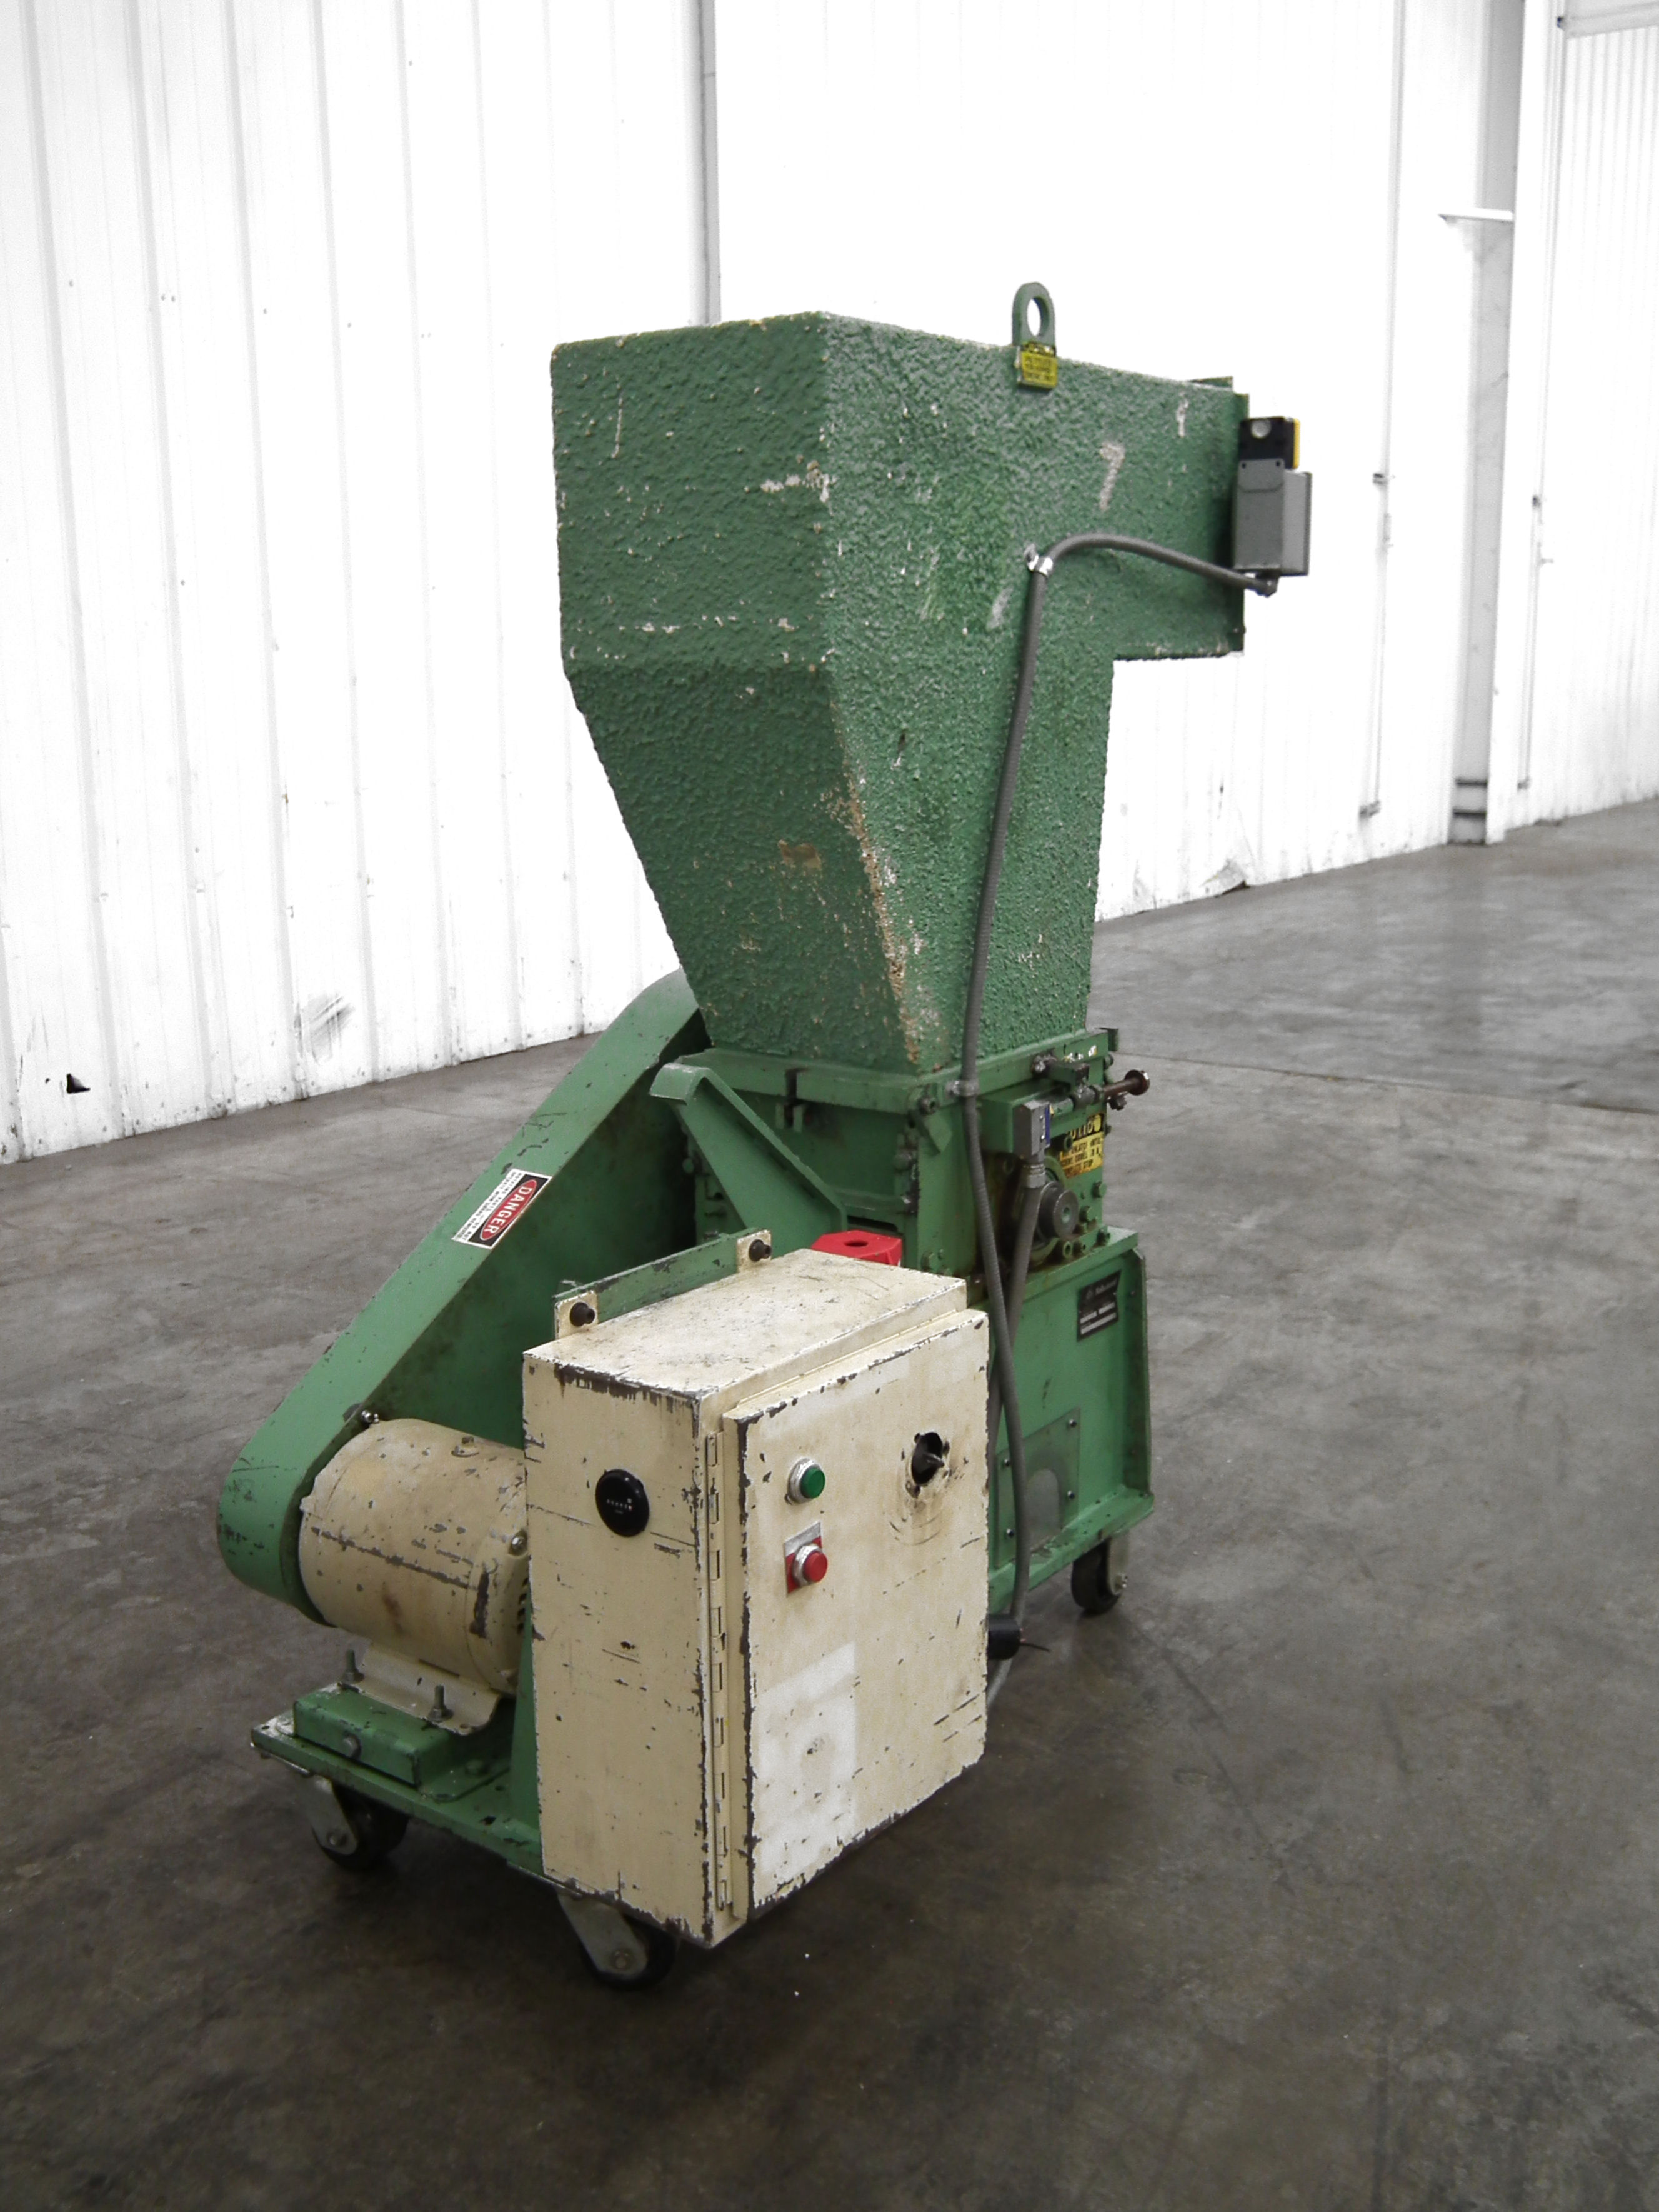 Ball and Jewell 1212SC Plastic Grinder B2811 - Image 3 of 10